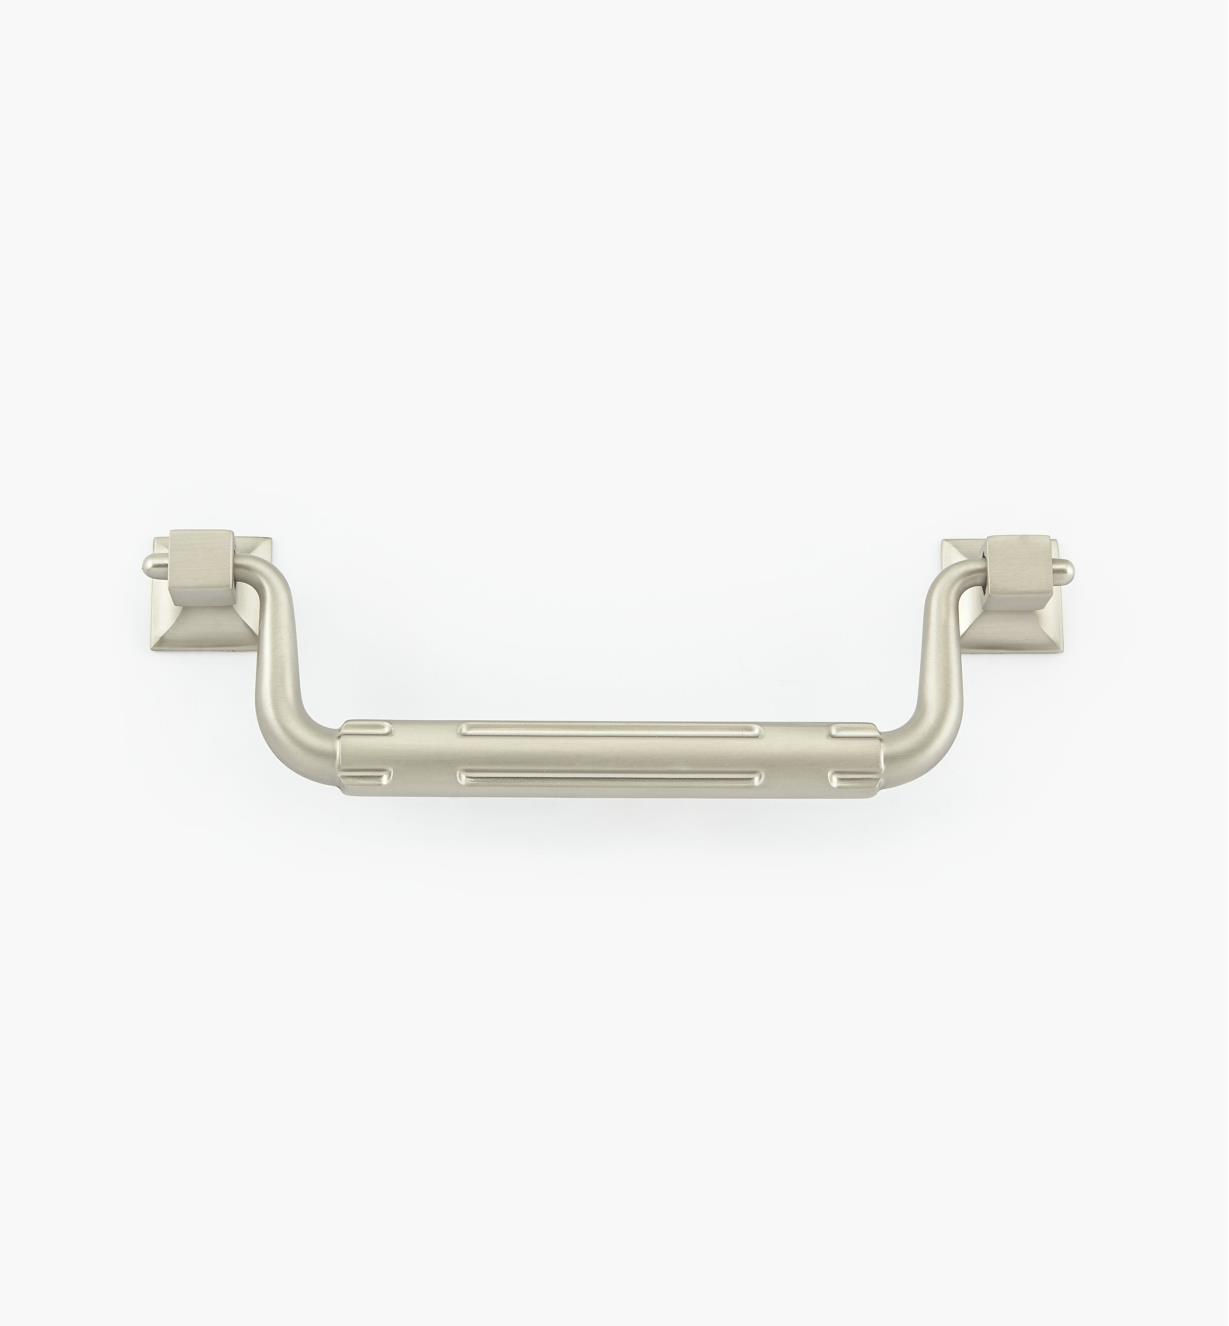 02W1903 - 128mm Satin Nickel Stop Handle